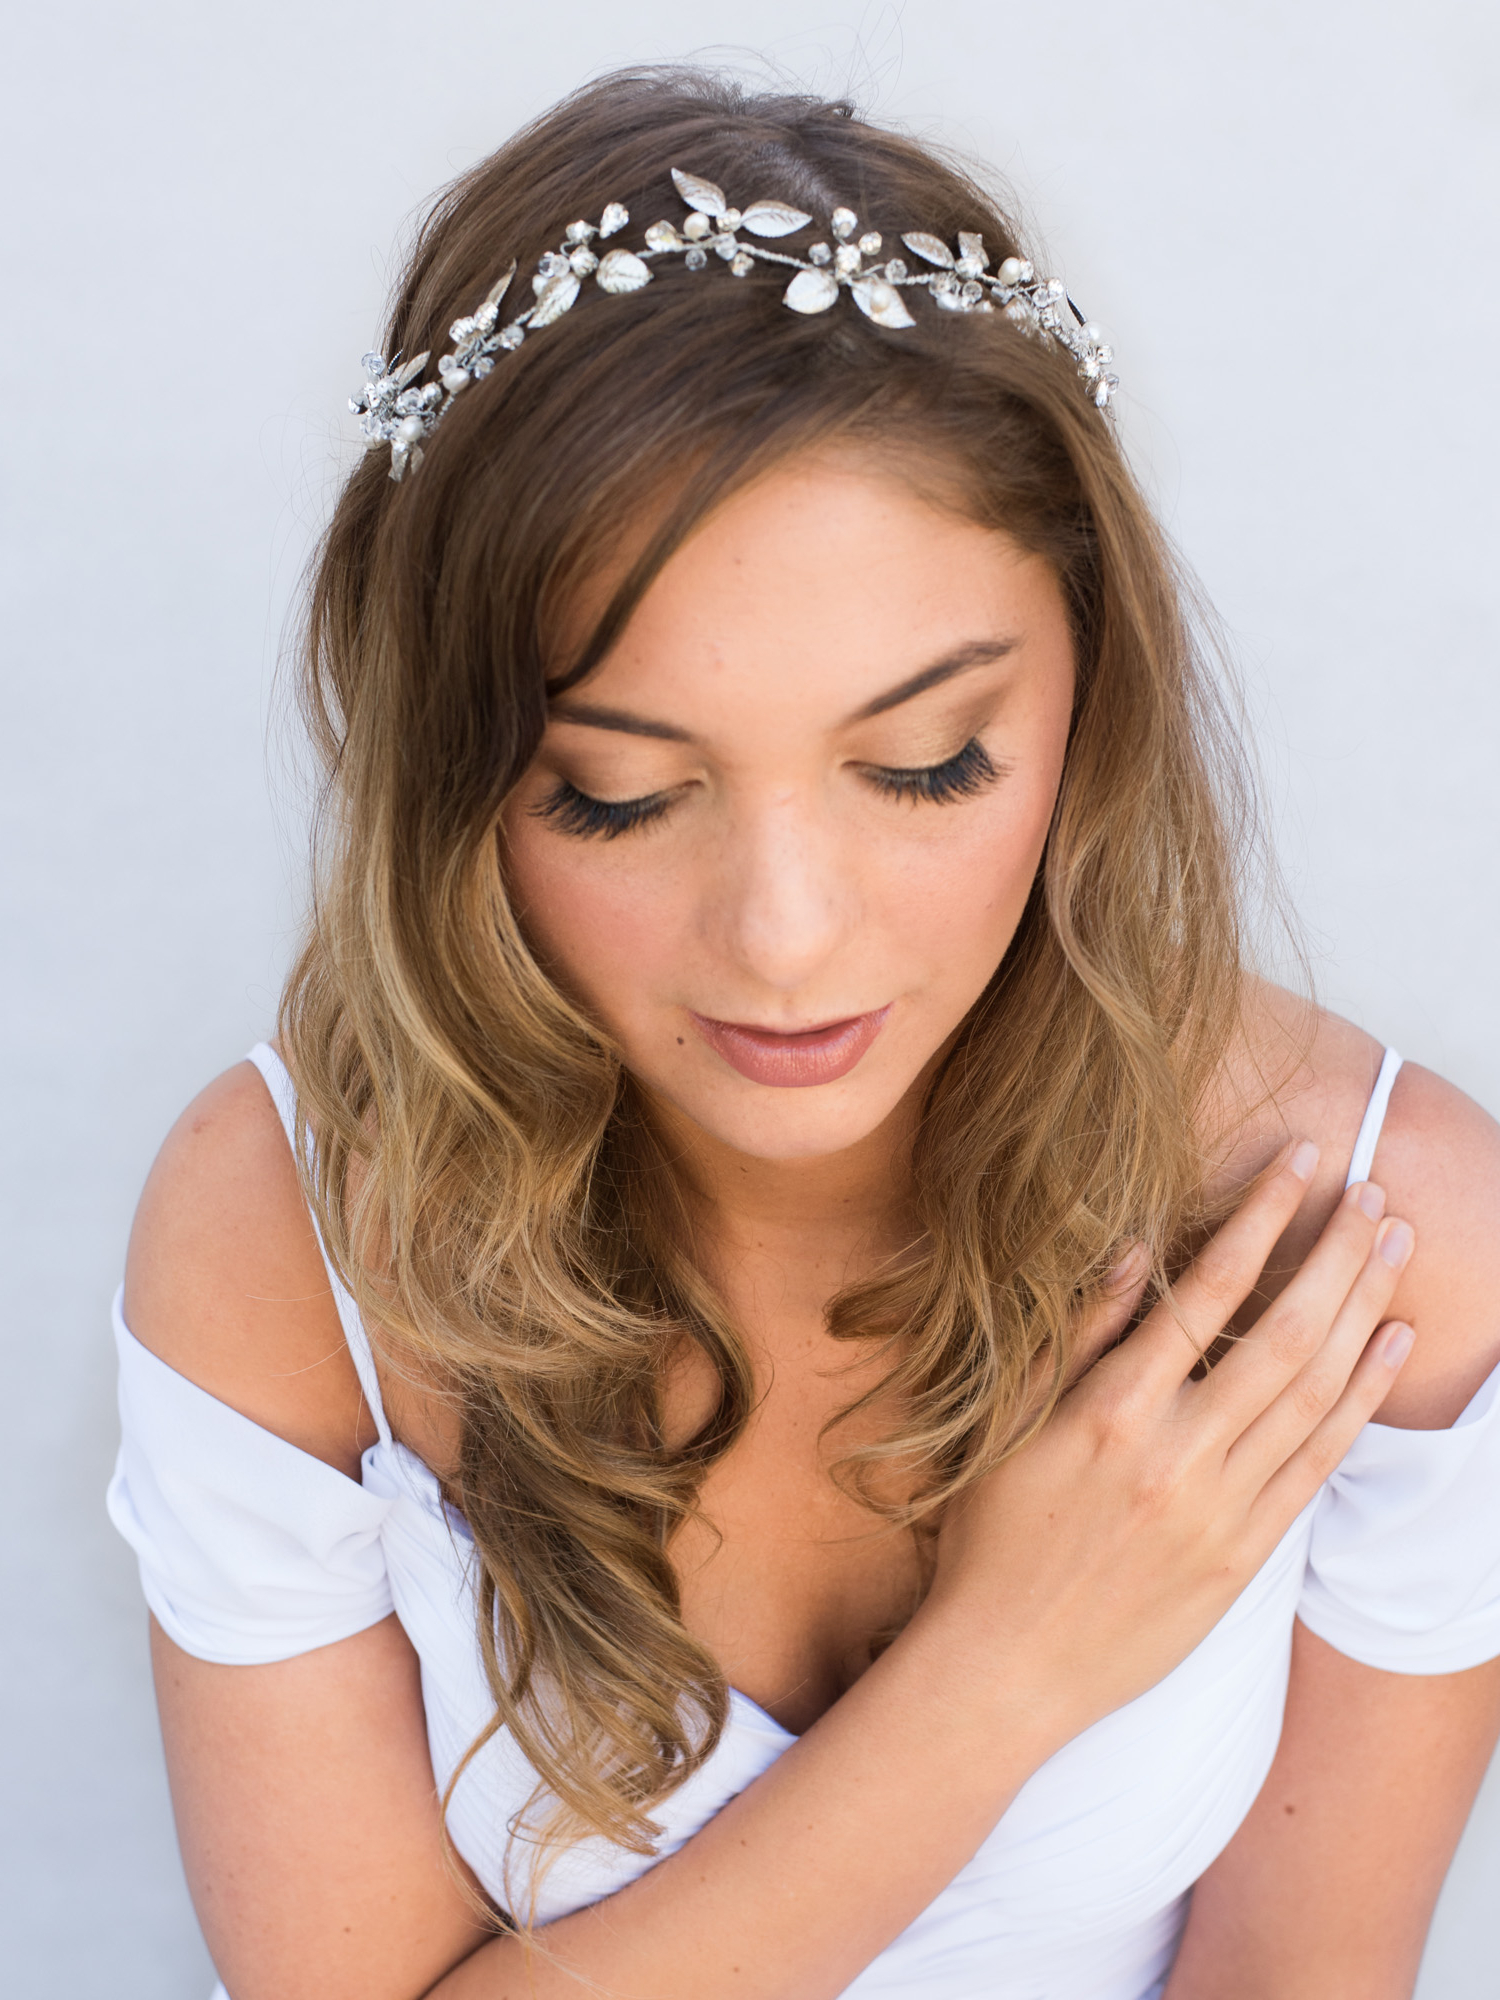 Well Known Side Curls Bridal Hairstyles With Tiara And Lace Veil Throughout Top 10 Tips For Choosing Your Bridal Hair Accessories – Hair Comes (View 20 of 20)